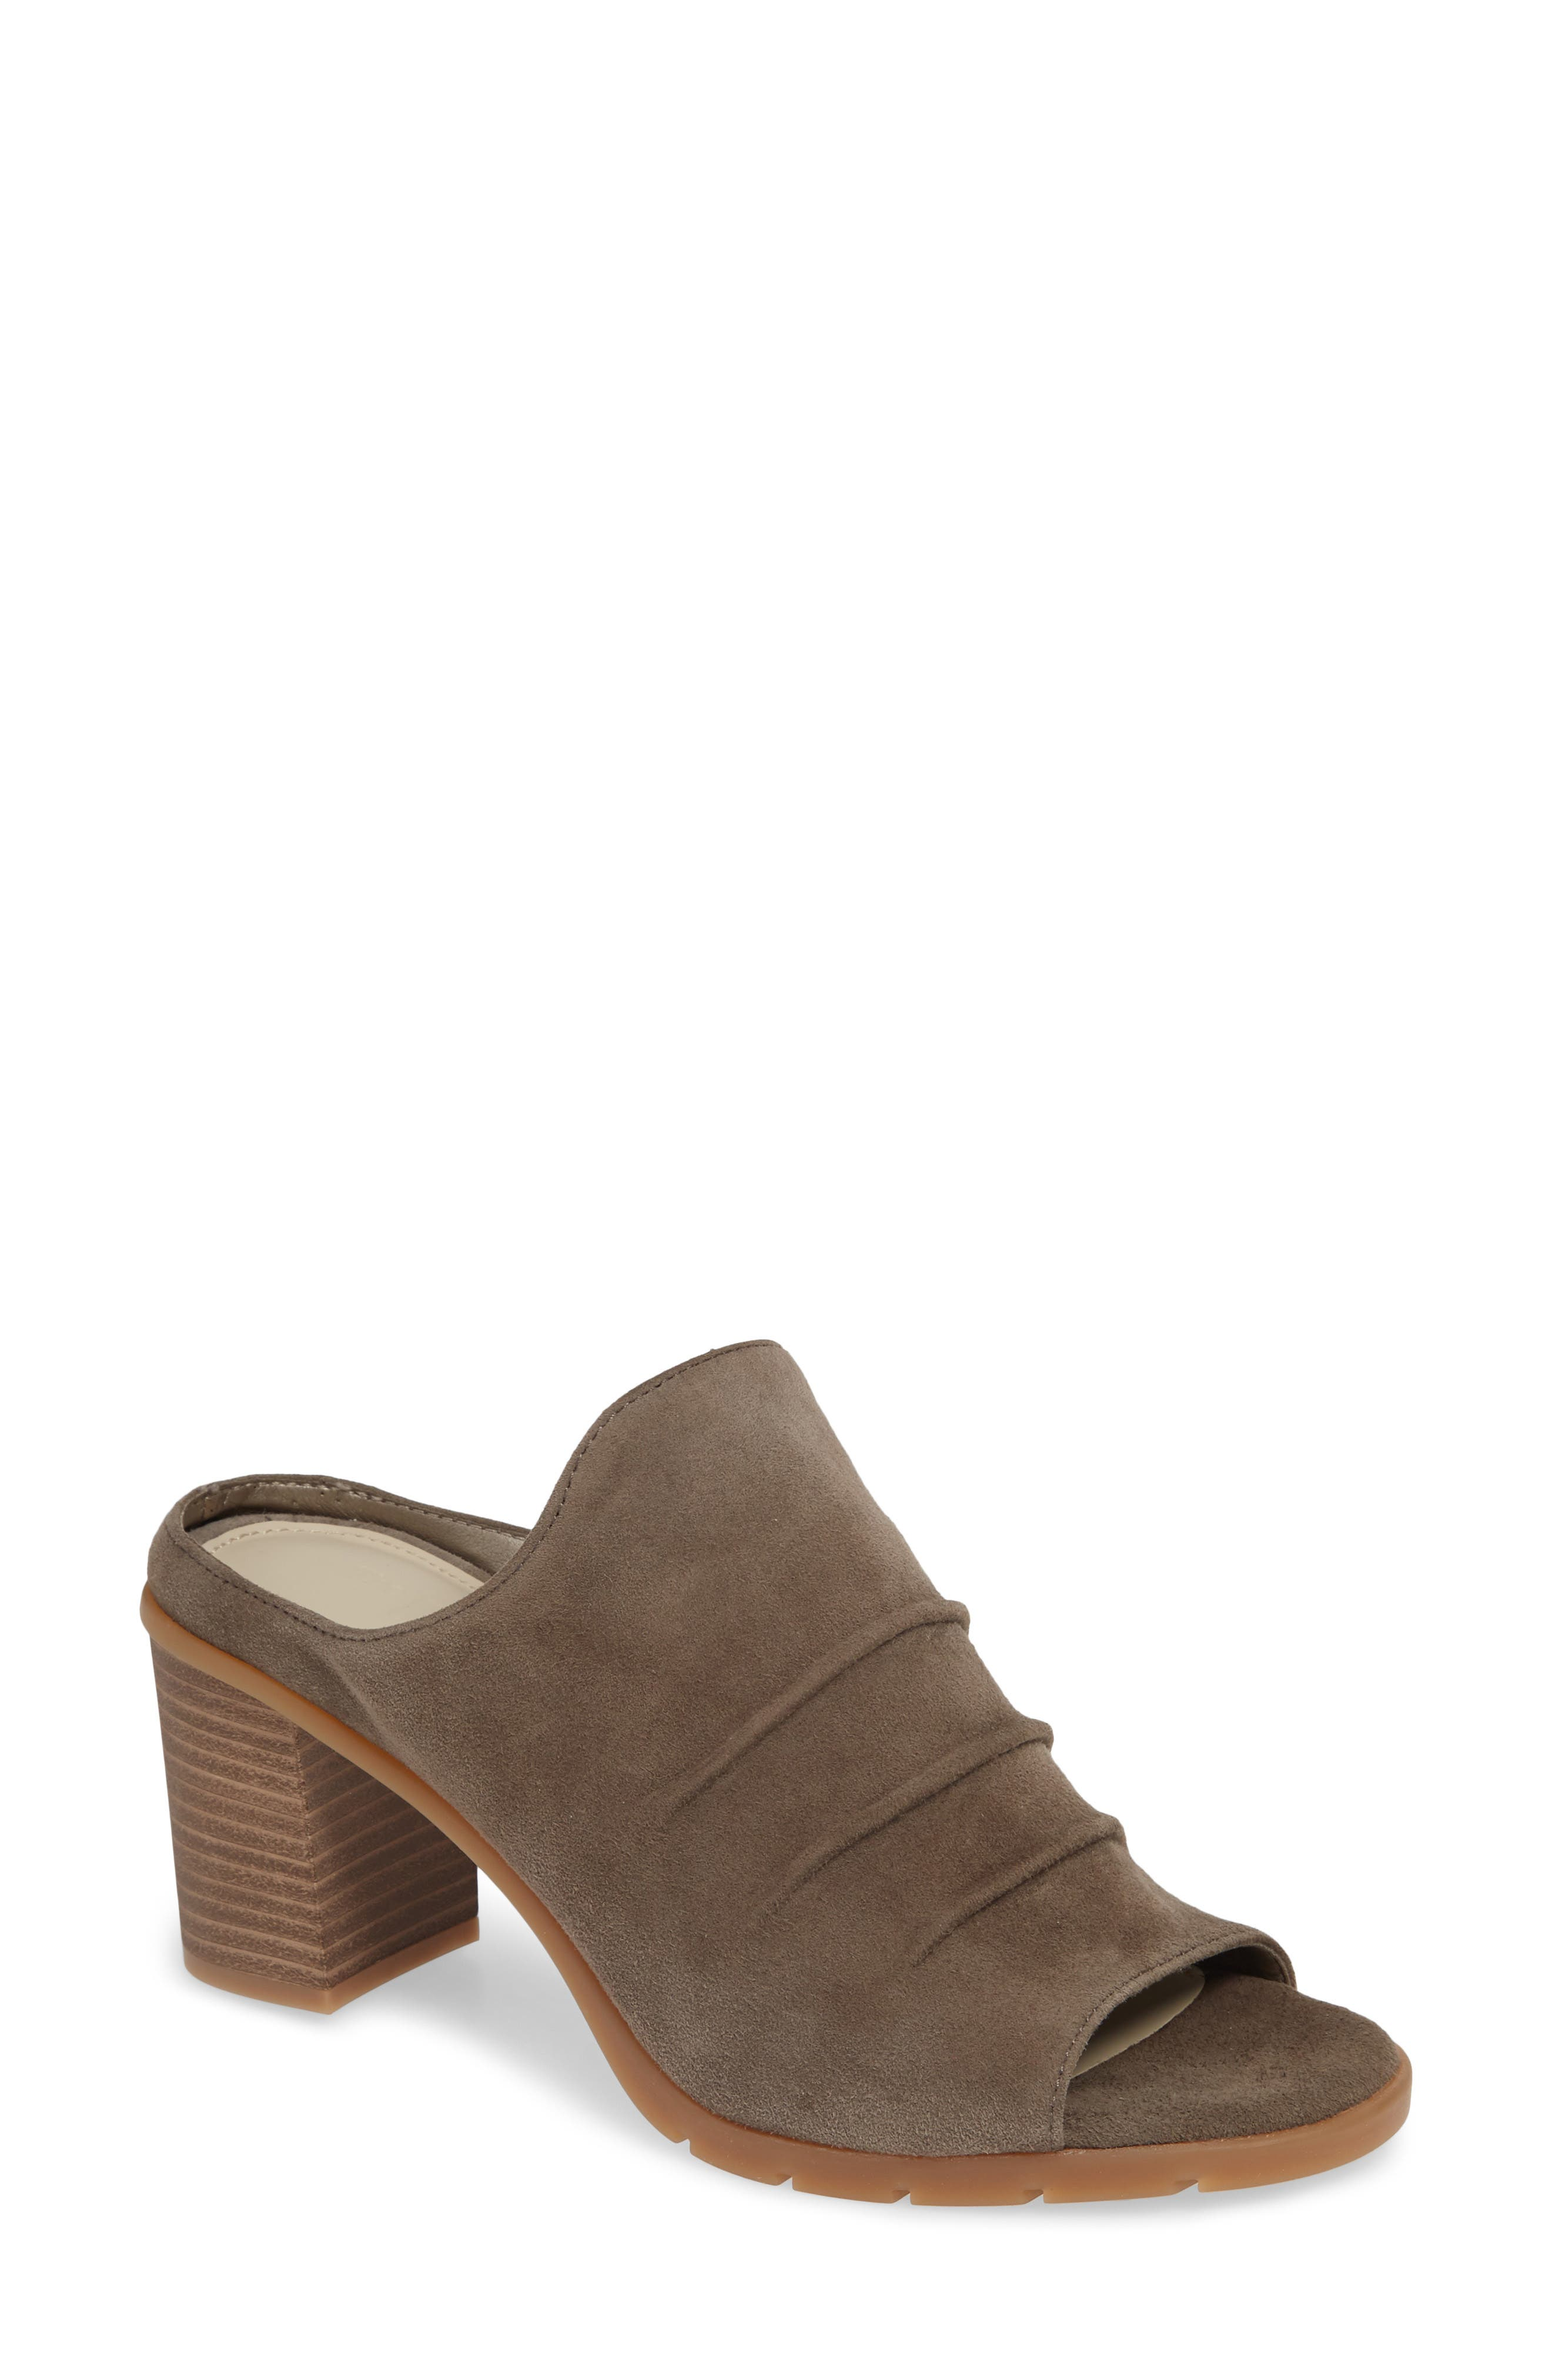 Aim to Pleat Mule,                         Main,                         color, BROWN LEATHER